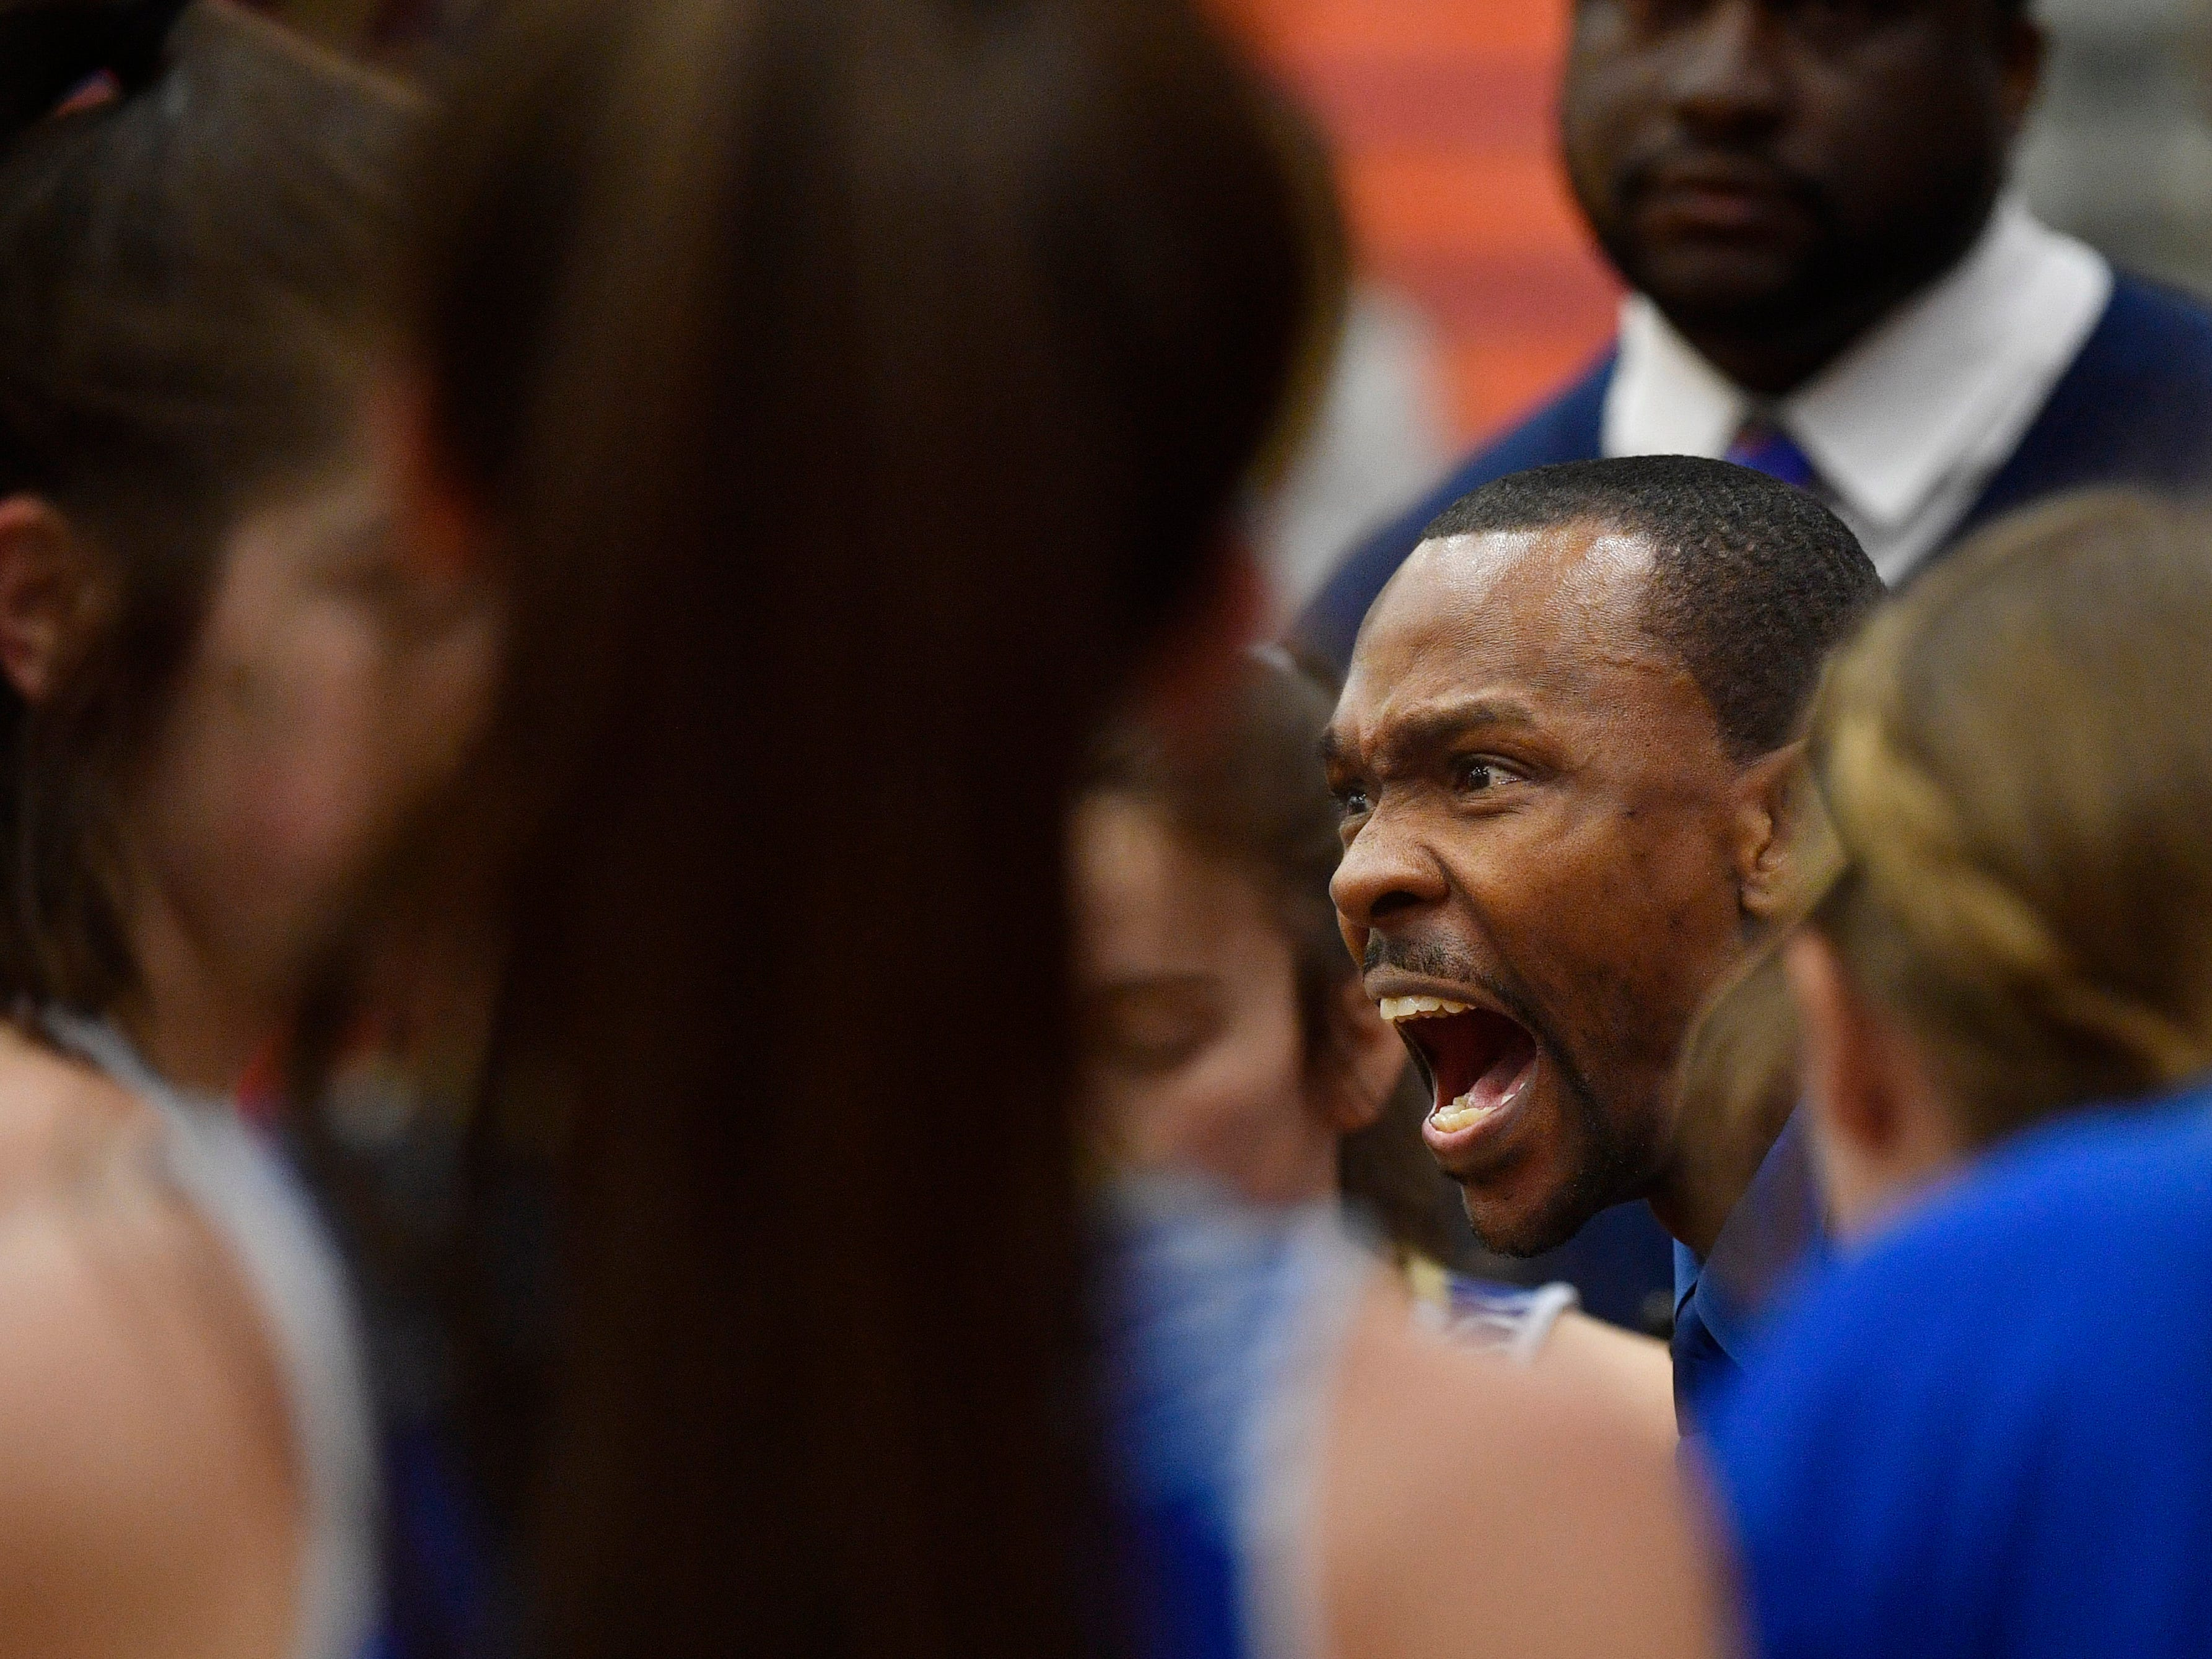 Brentwood coach Myles Thrash talks with his team during a break as Dickson plays Brentwood in the District 11-AAA girls basketball championship Monday, Feb. 18, 2019, in Dickson, Tenn.